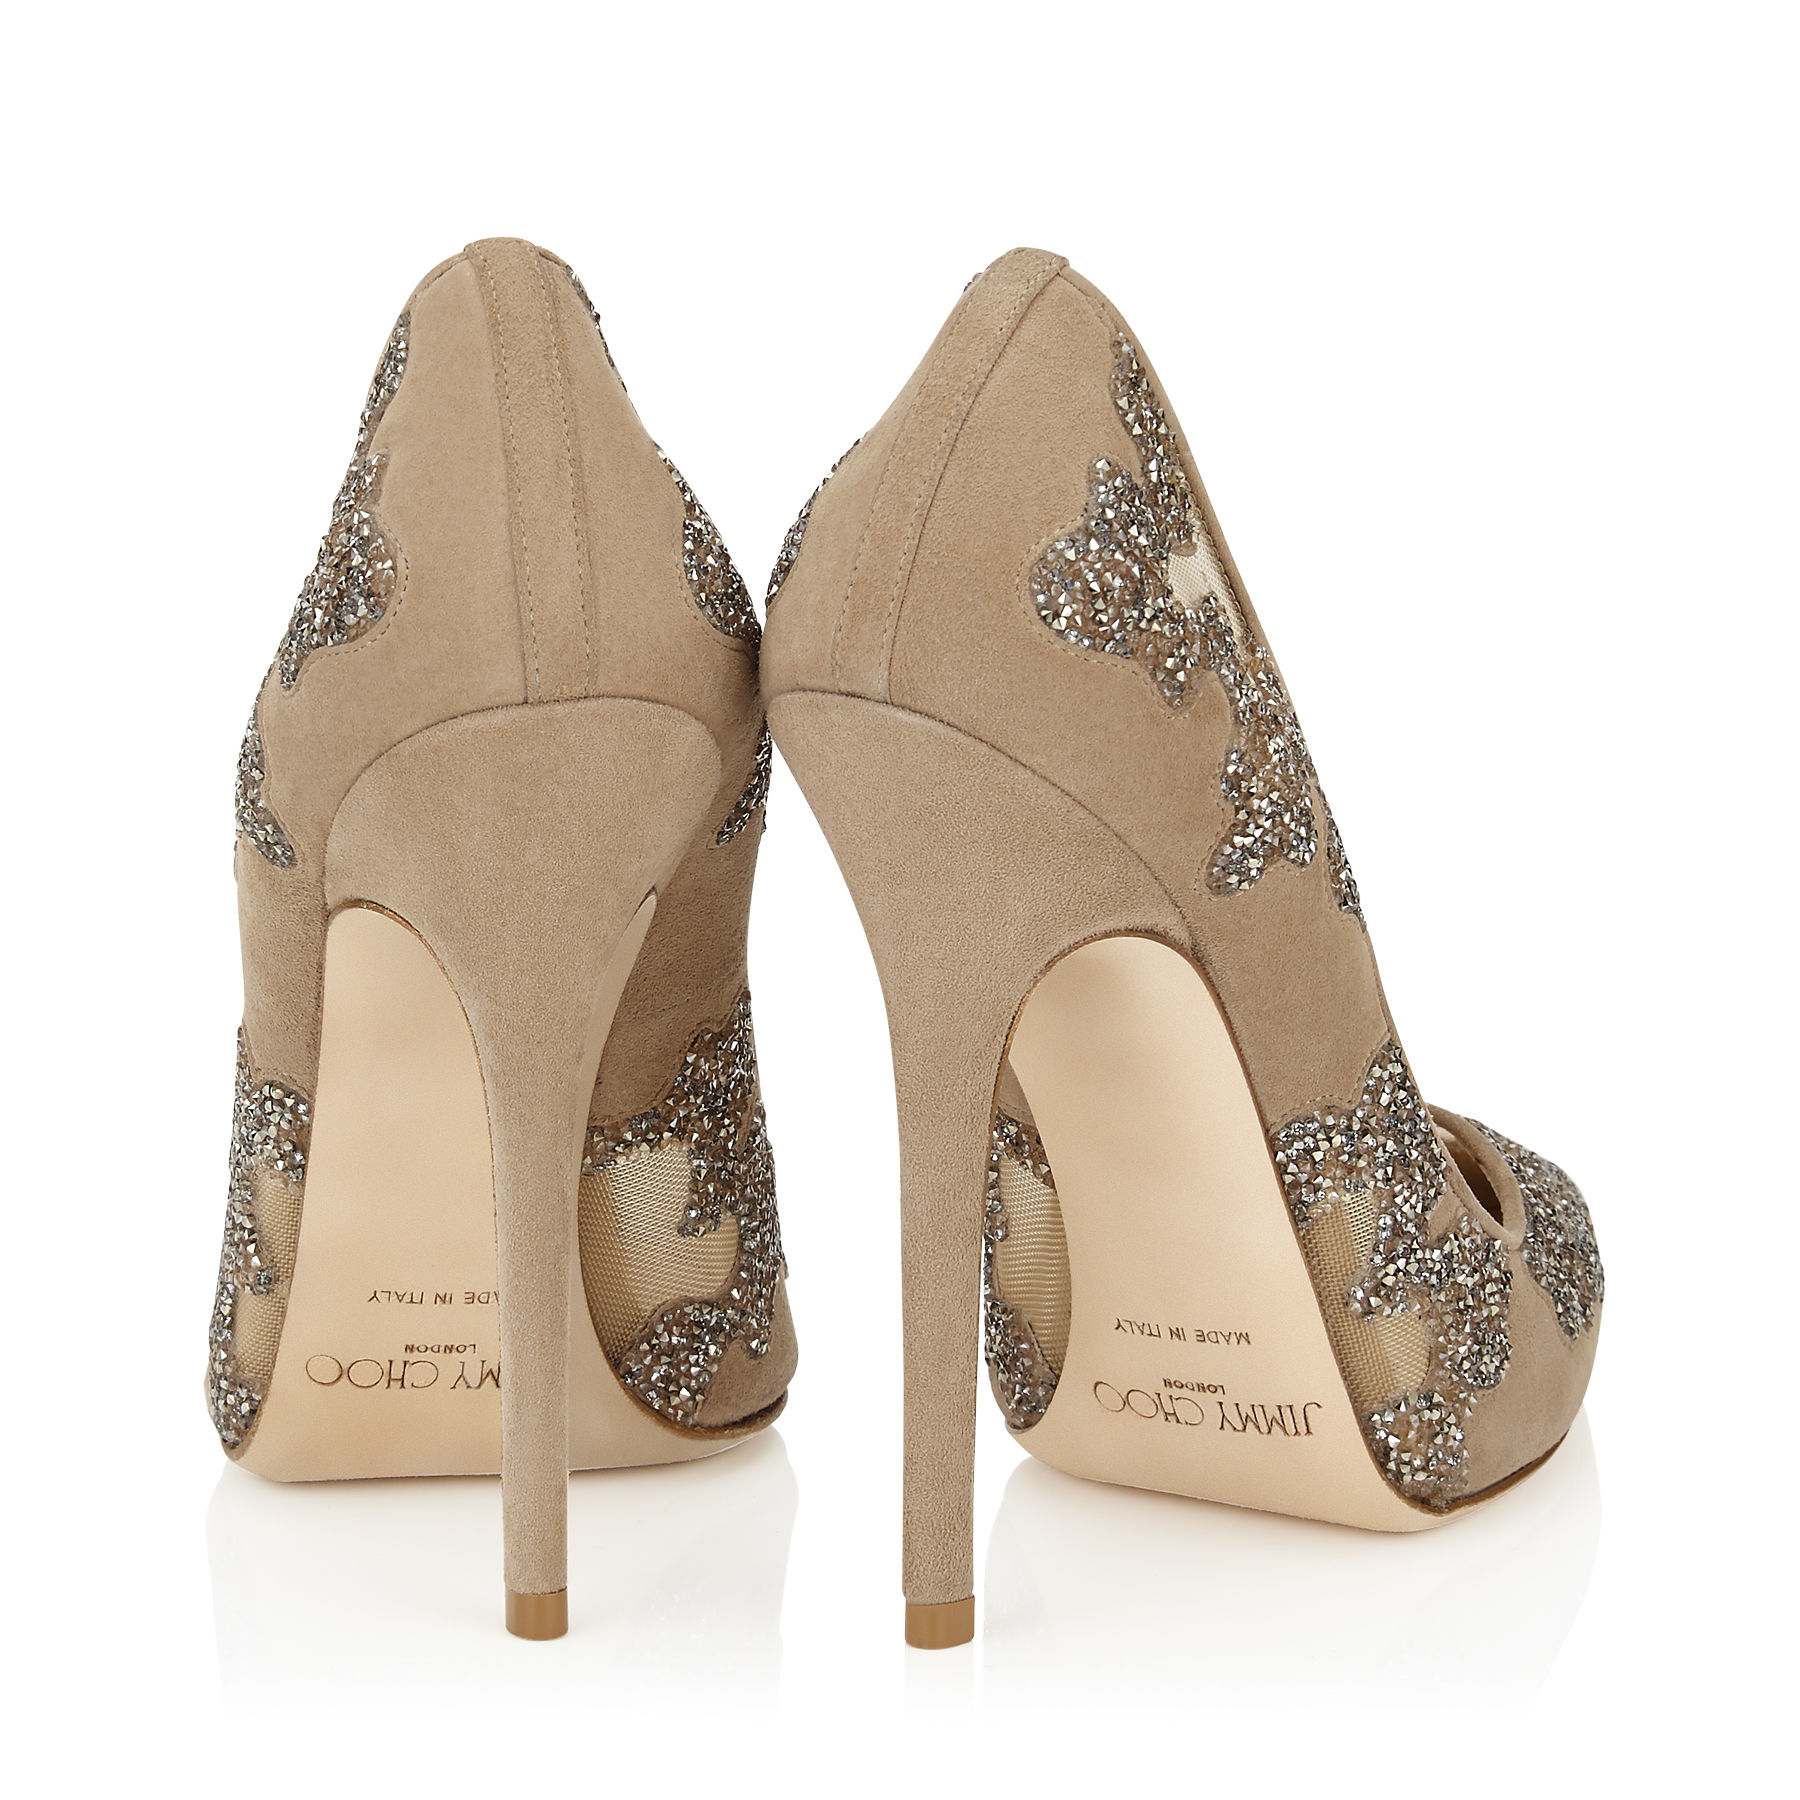 Lyst - Jimmy Choo Karmel 120 Nude Suede And Mesh With Crystal Rocks Pointy  Toe Pumps in Natural